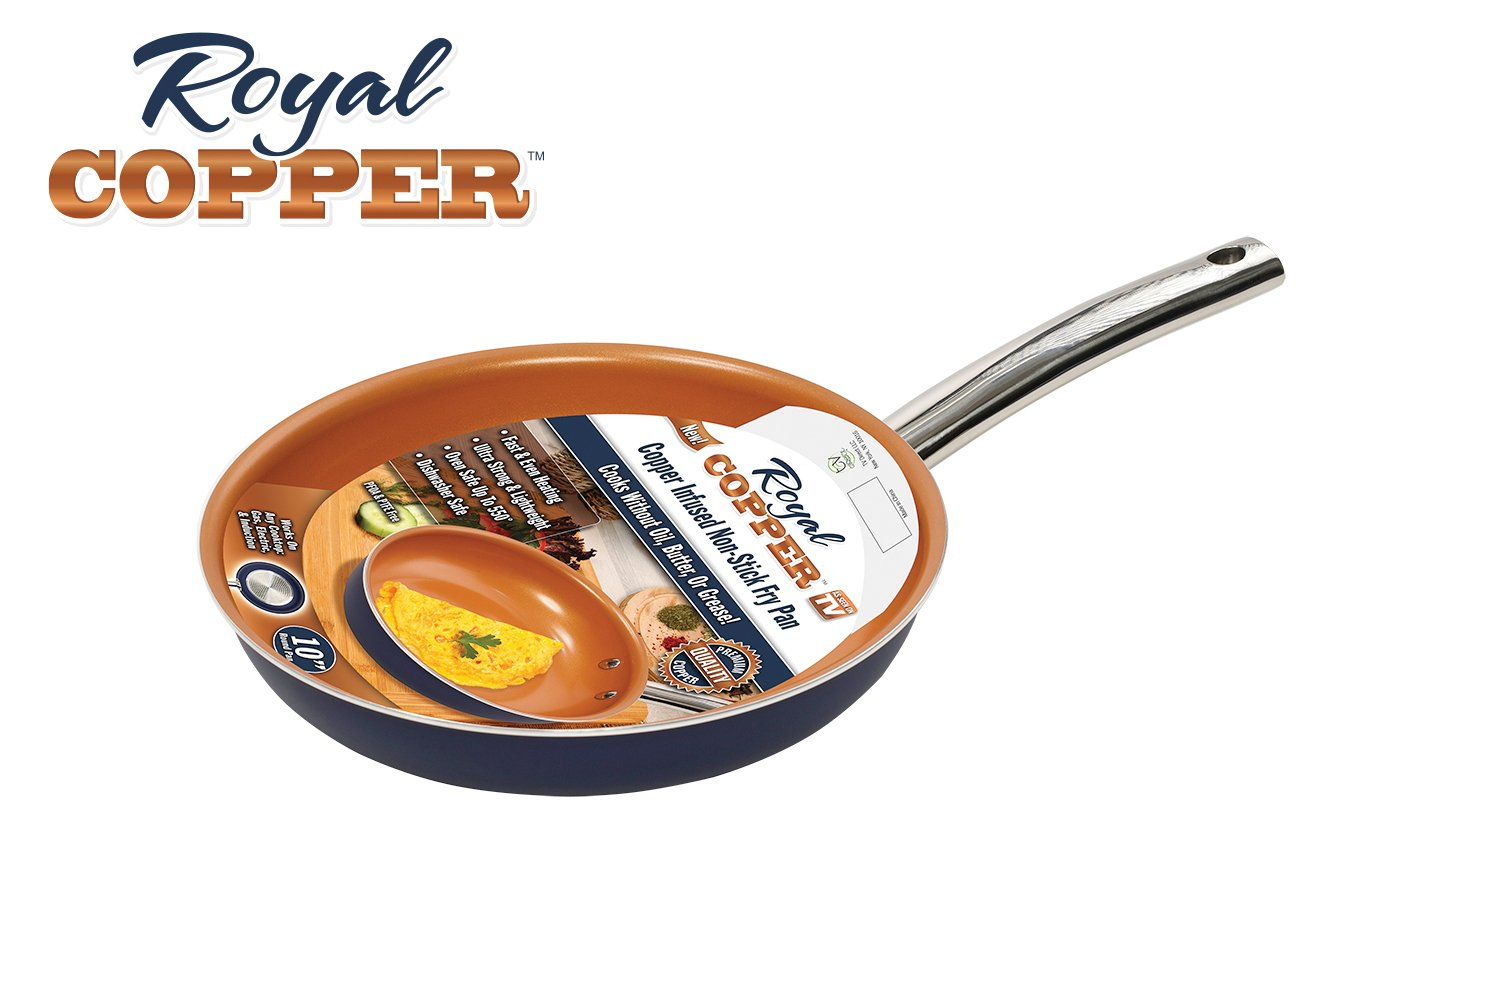 Royal Copper SCRP-MC6 Infused Nonstick Induction Fry Pan, 10 inch